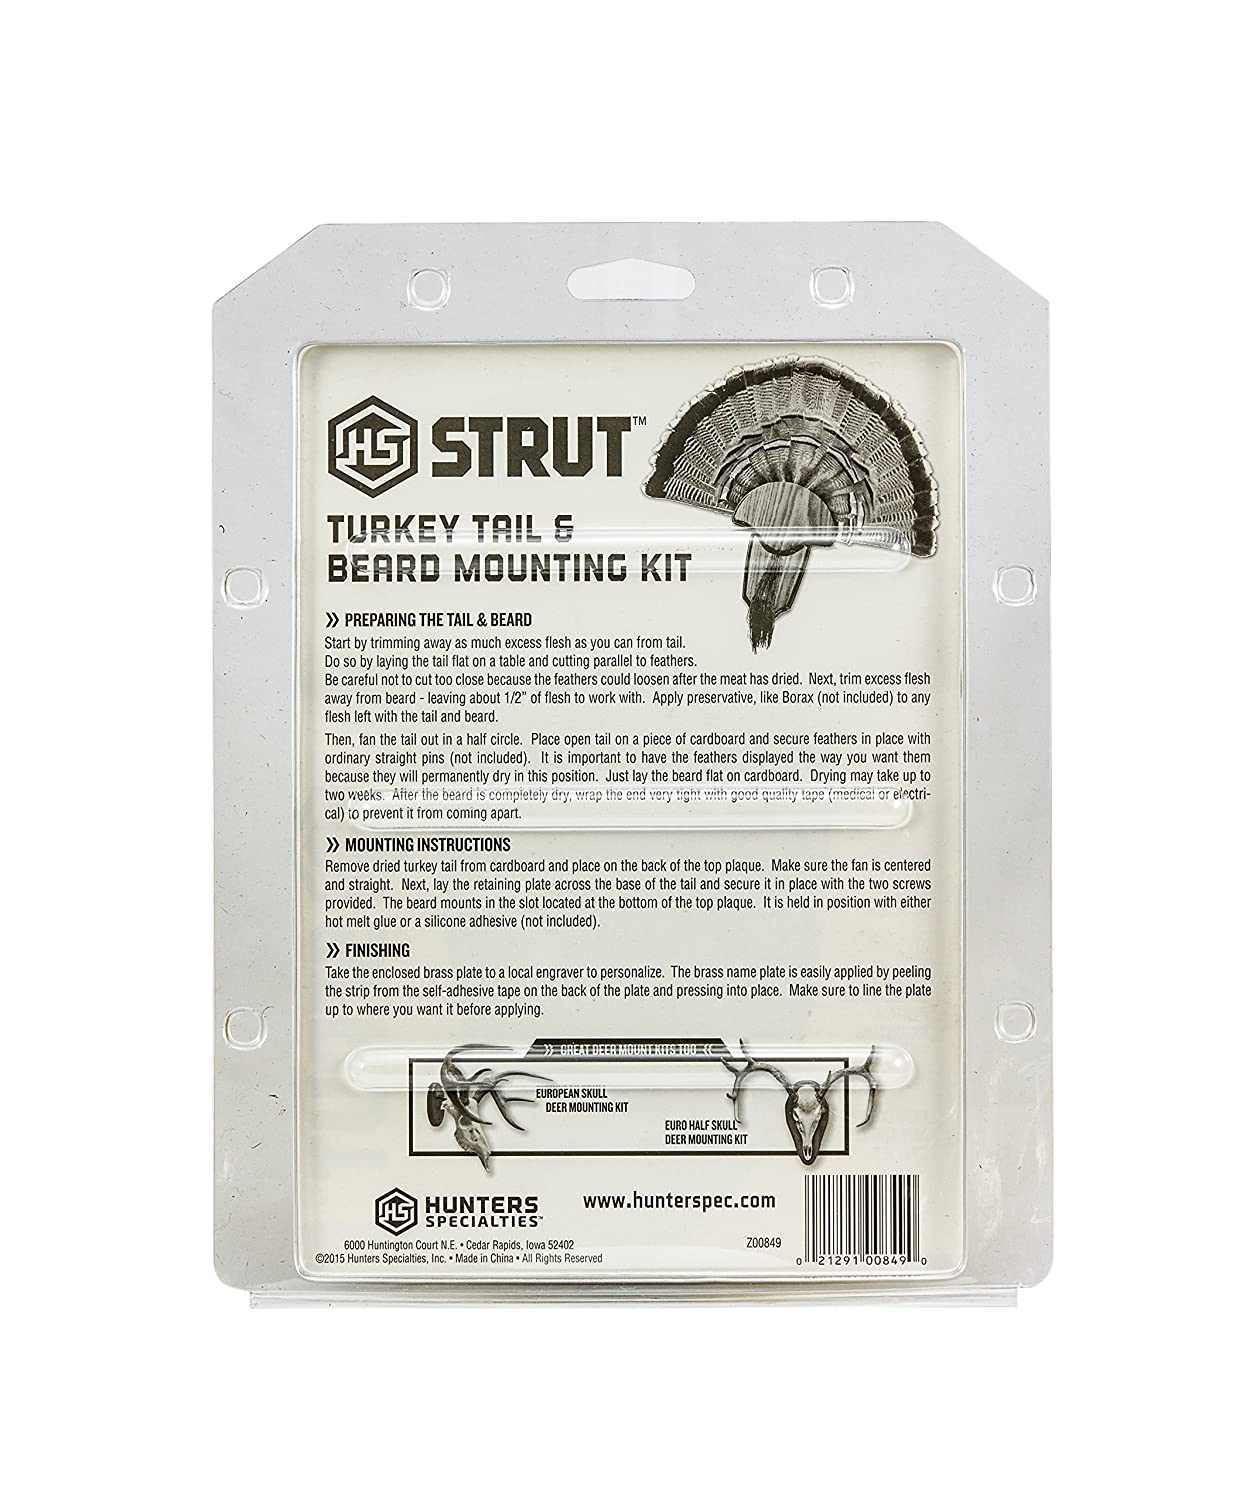 Amazon Hunters Specialties Hs Strut Turkey Tail Beard